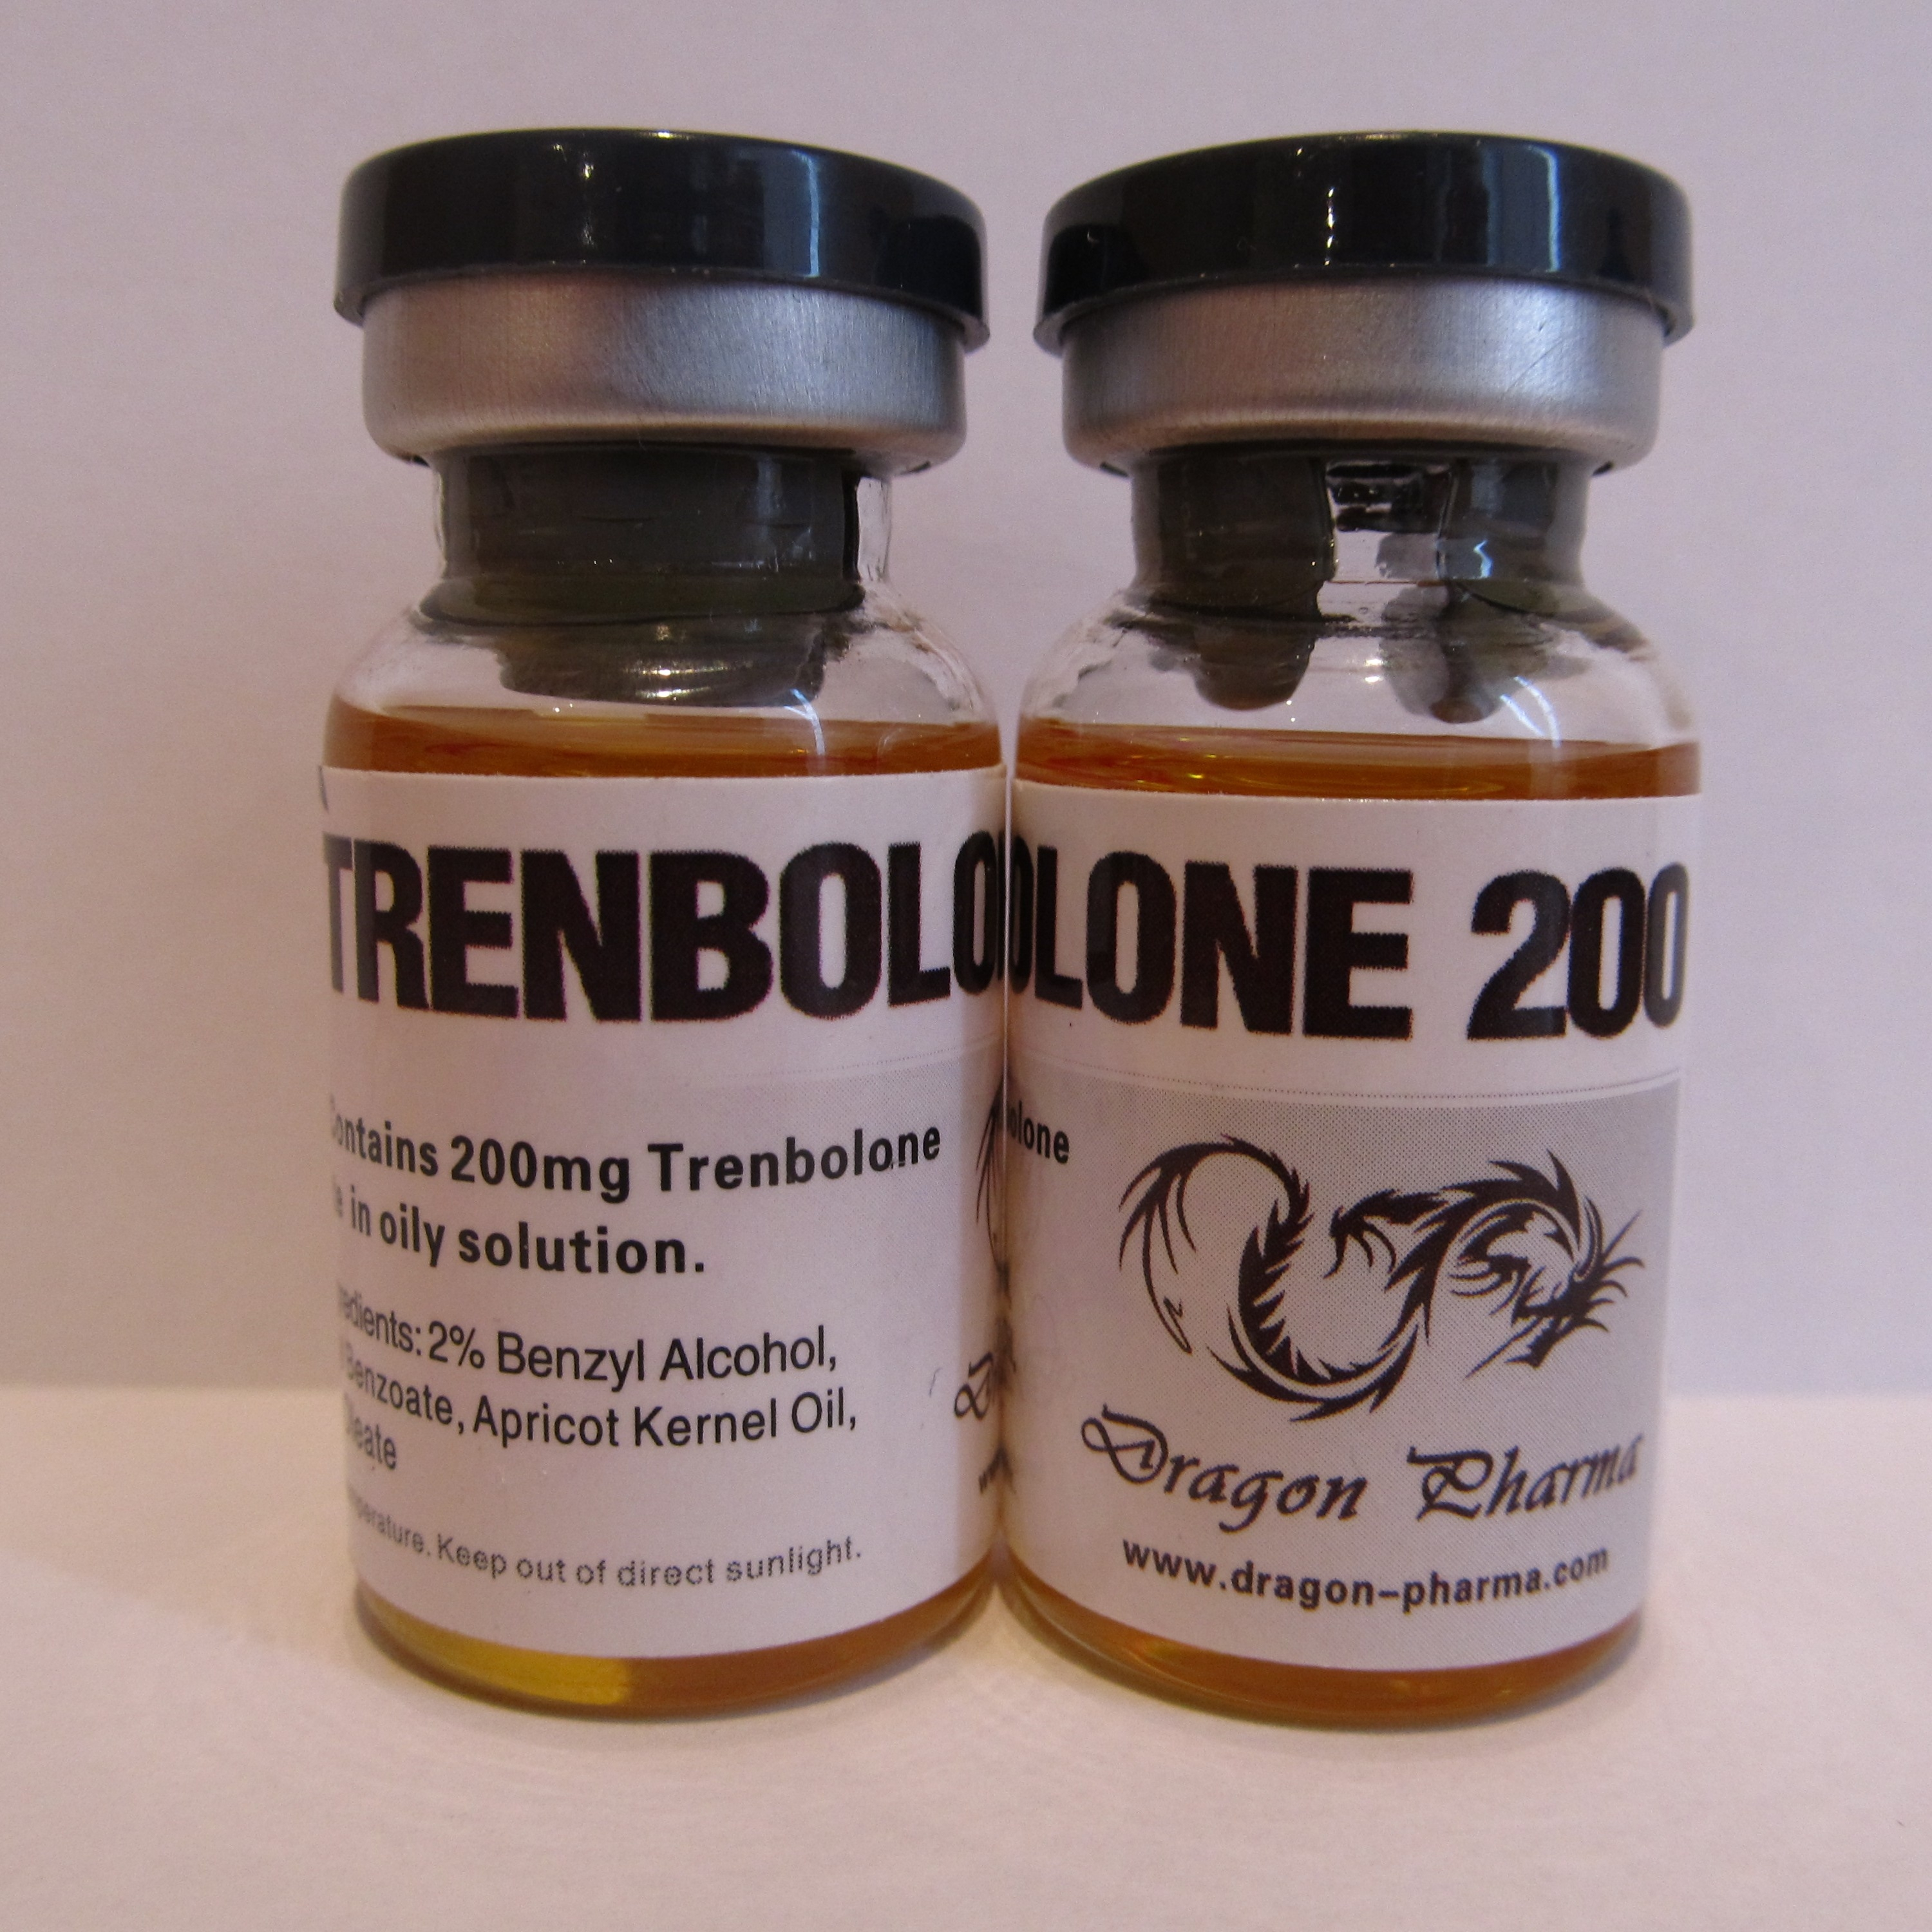 Trenbolone 200 (Trenbolone Enanthate)